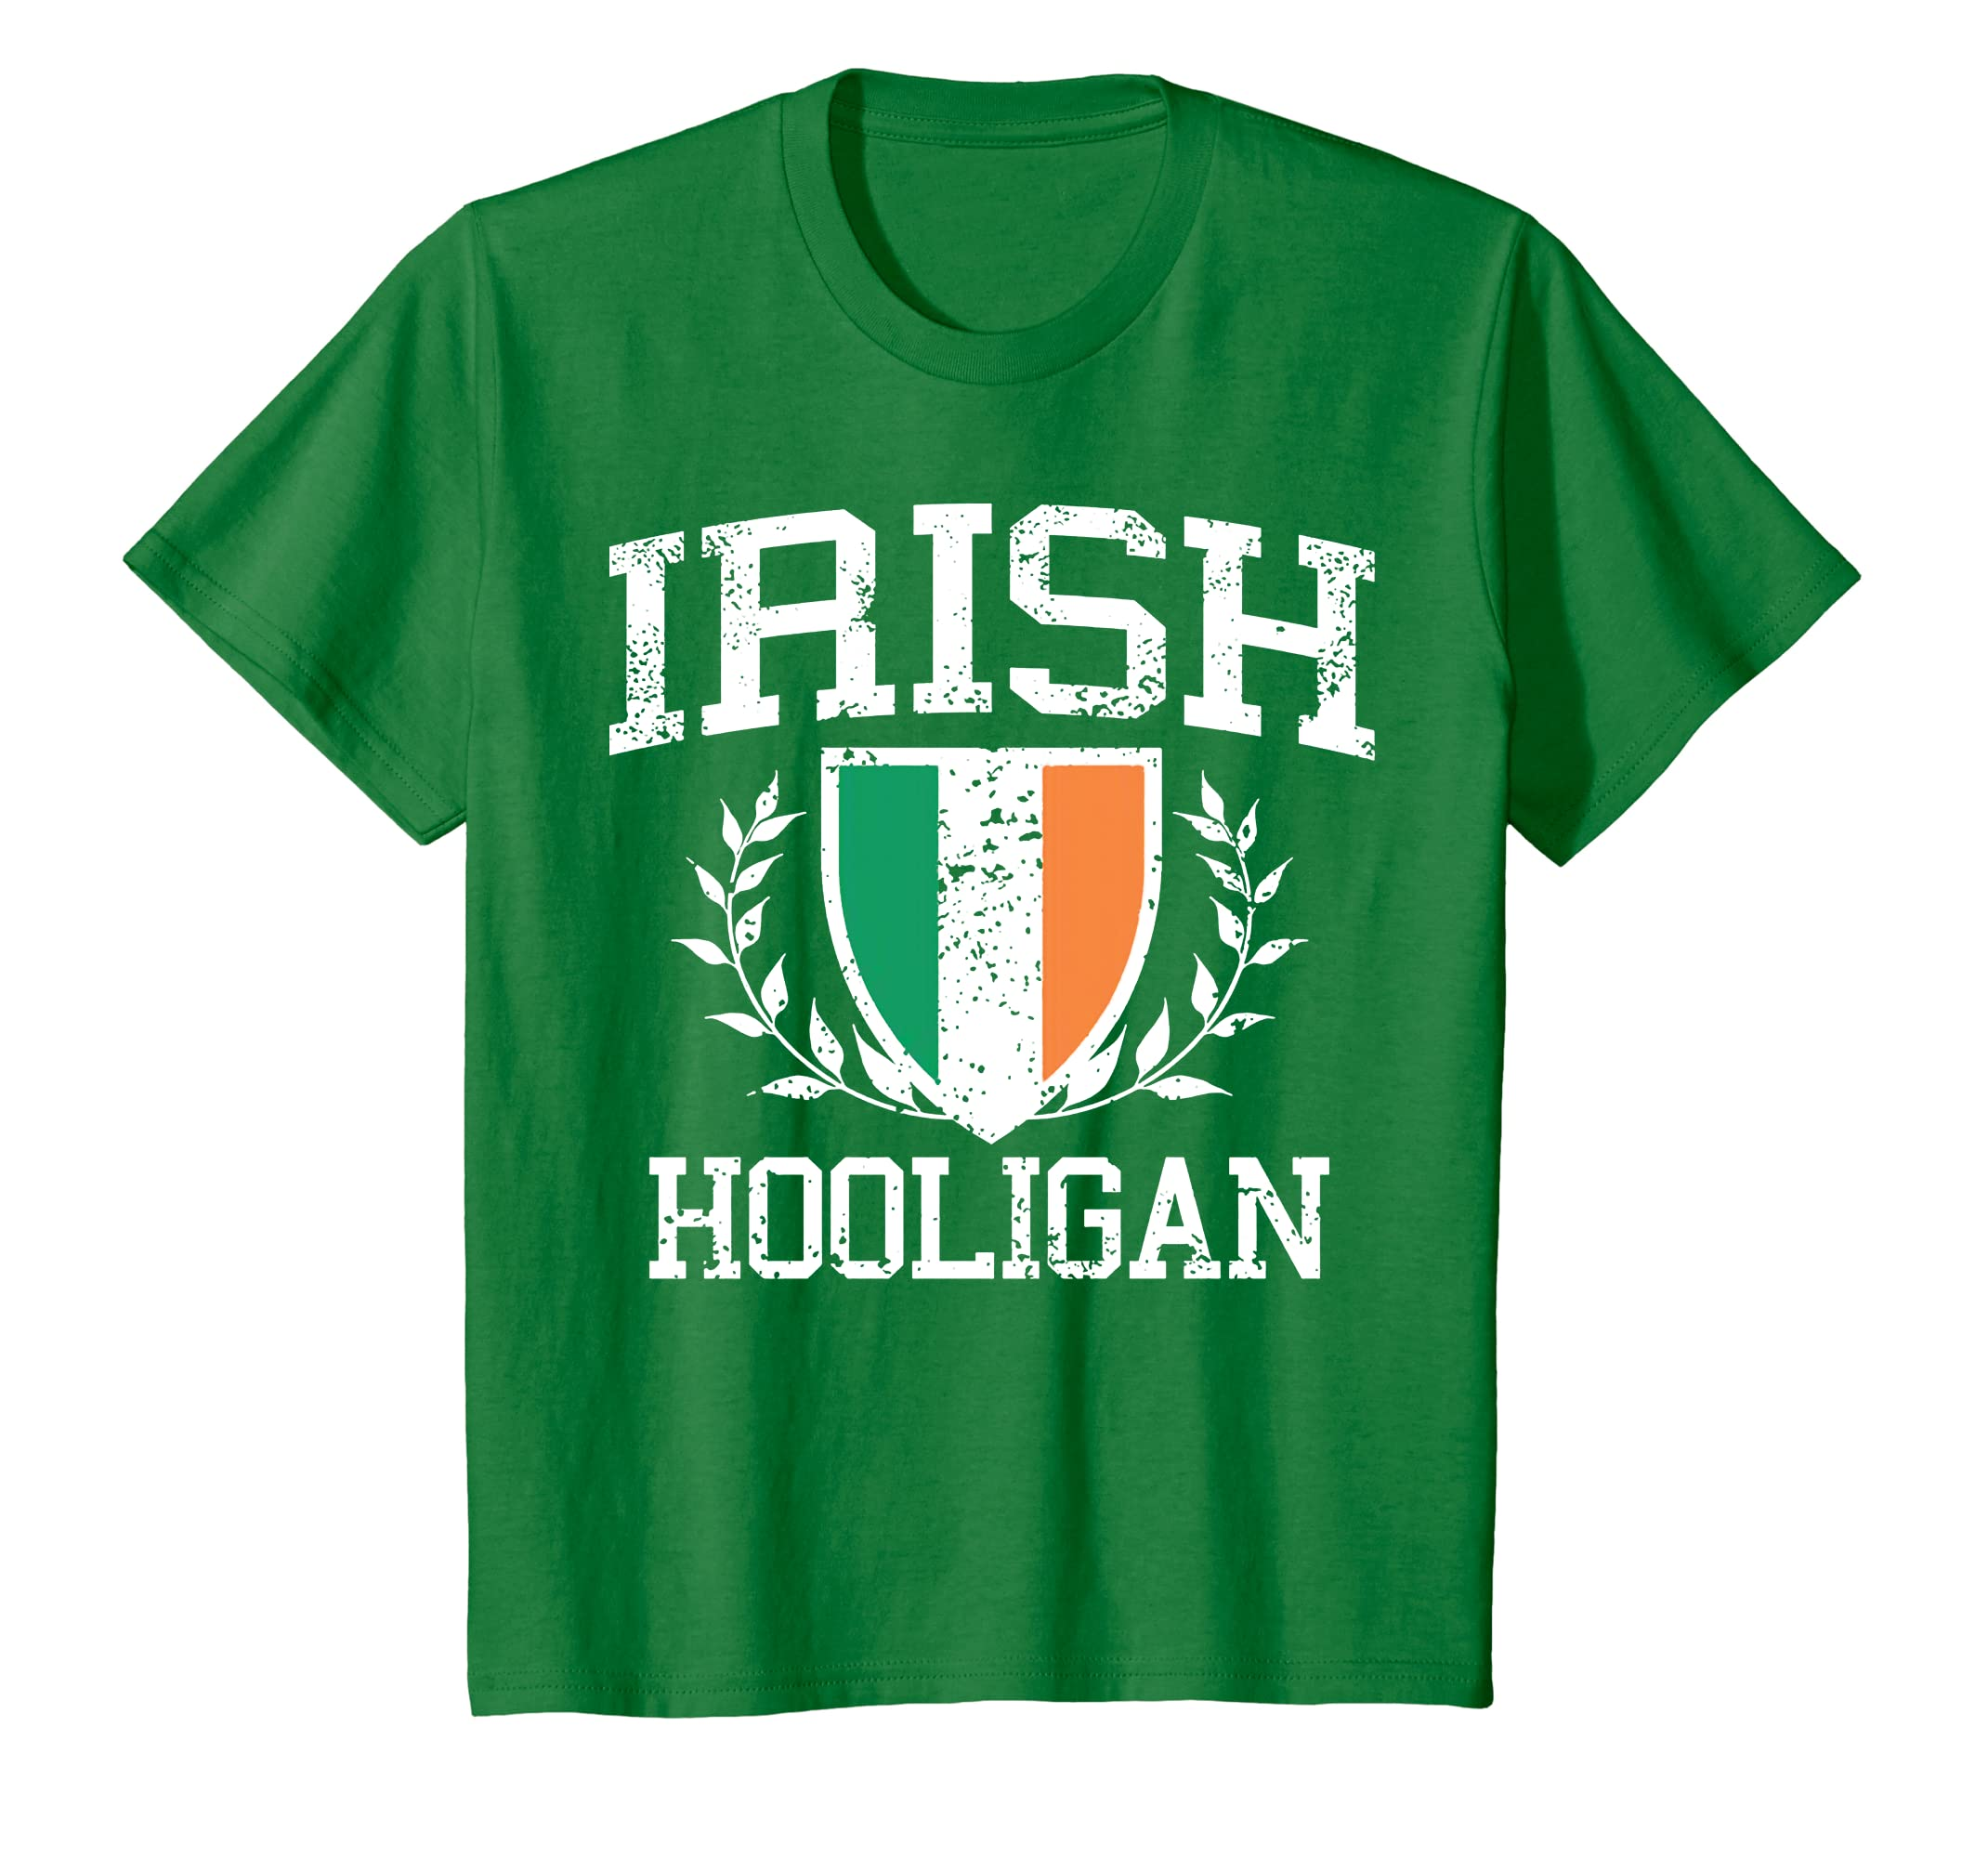 448024e9a Amazon.com: IRISH Hooligan T-Shirt: Clothing